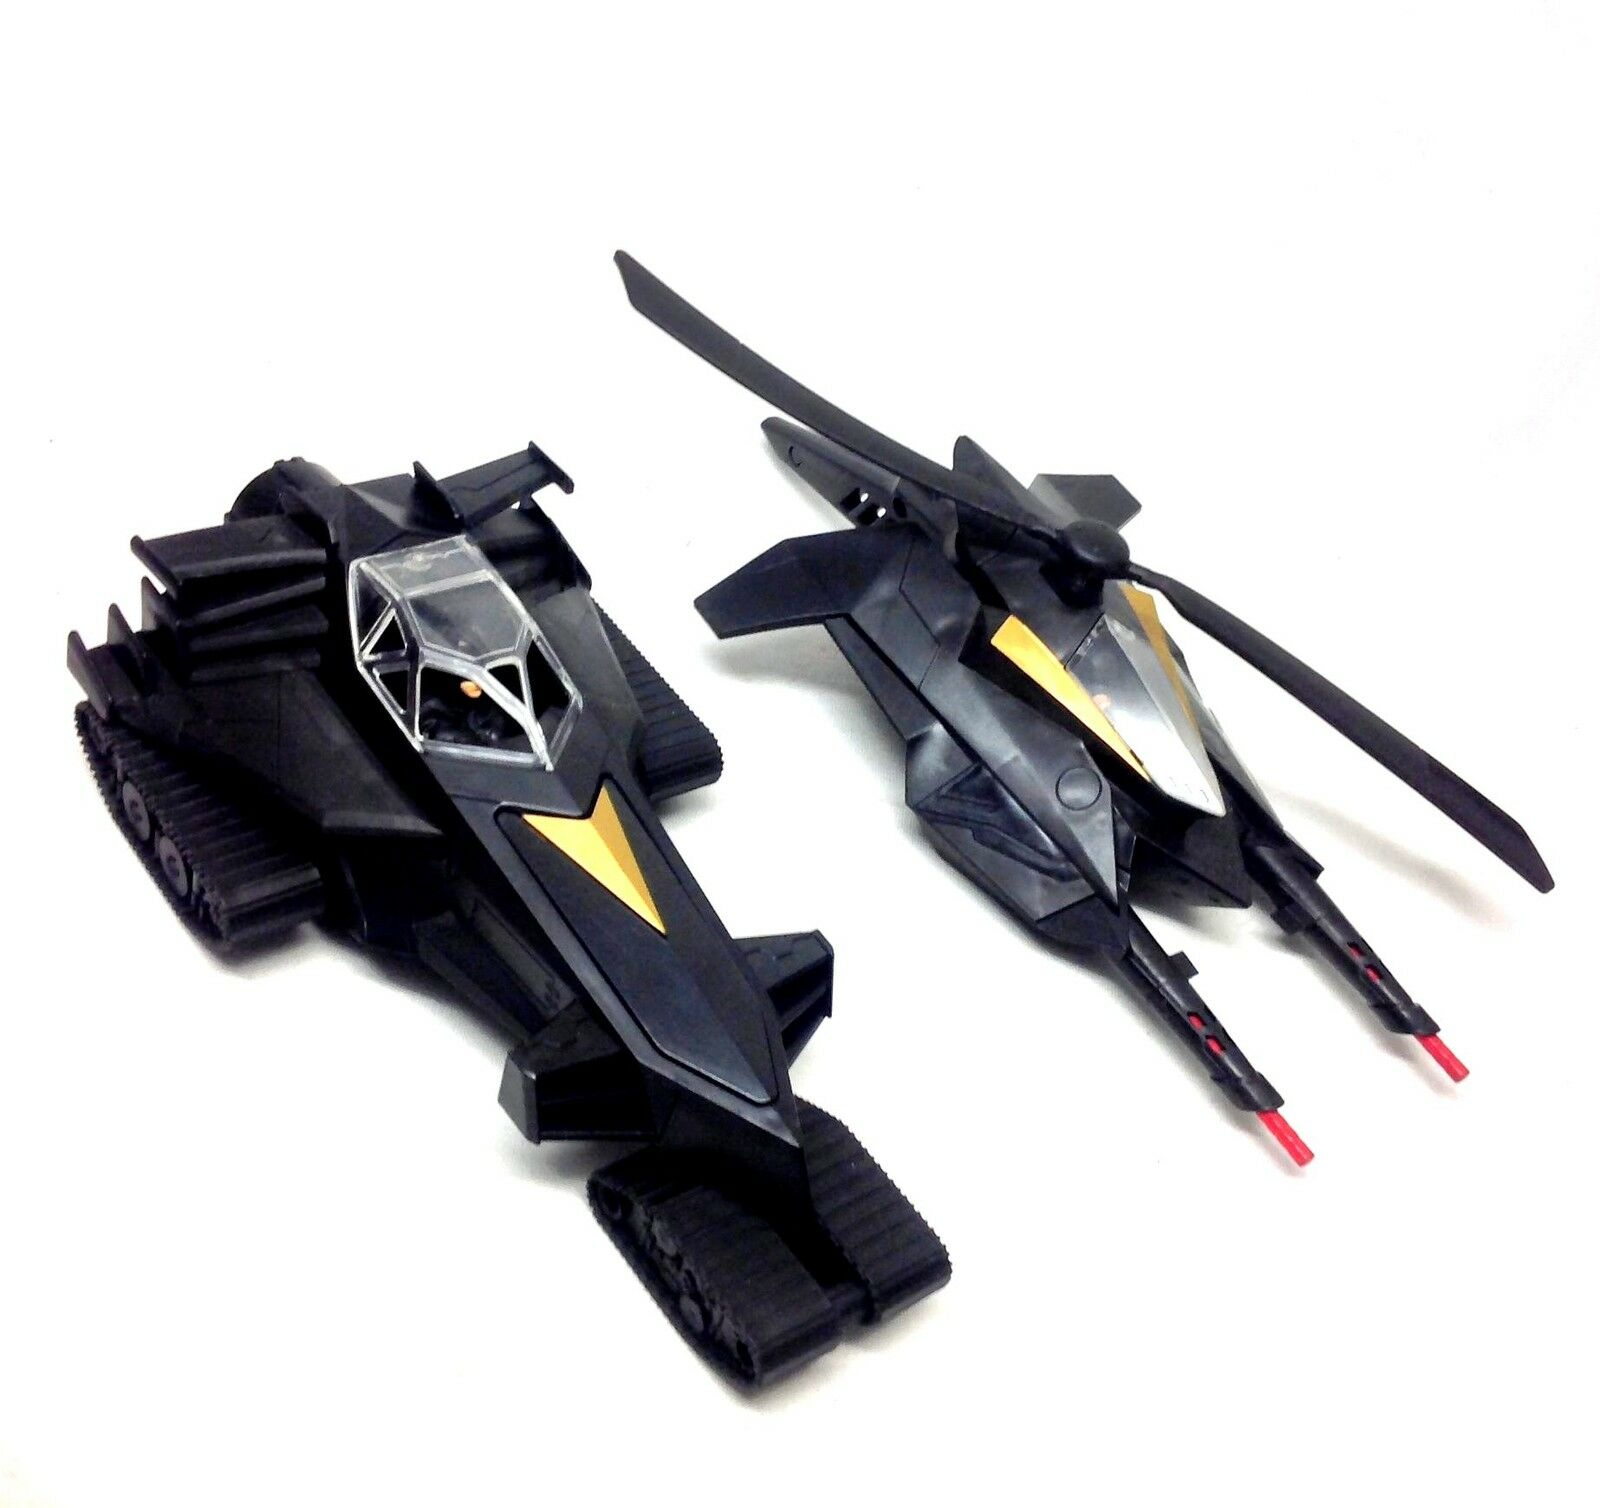 DC Comics BATMAN DARK KNIGHT BAT COPTER & BAT TANK toy vehicles, 5   figure size